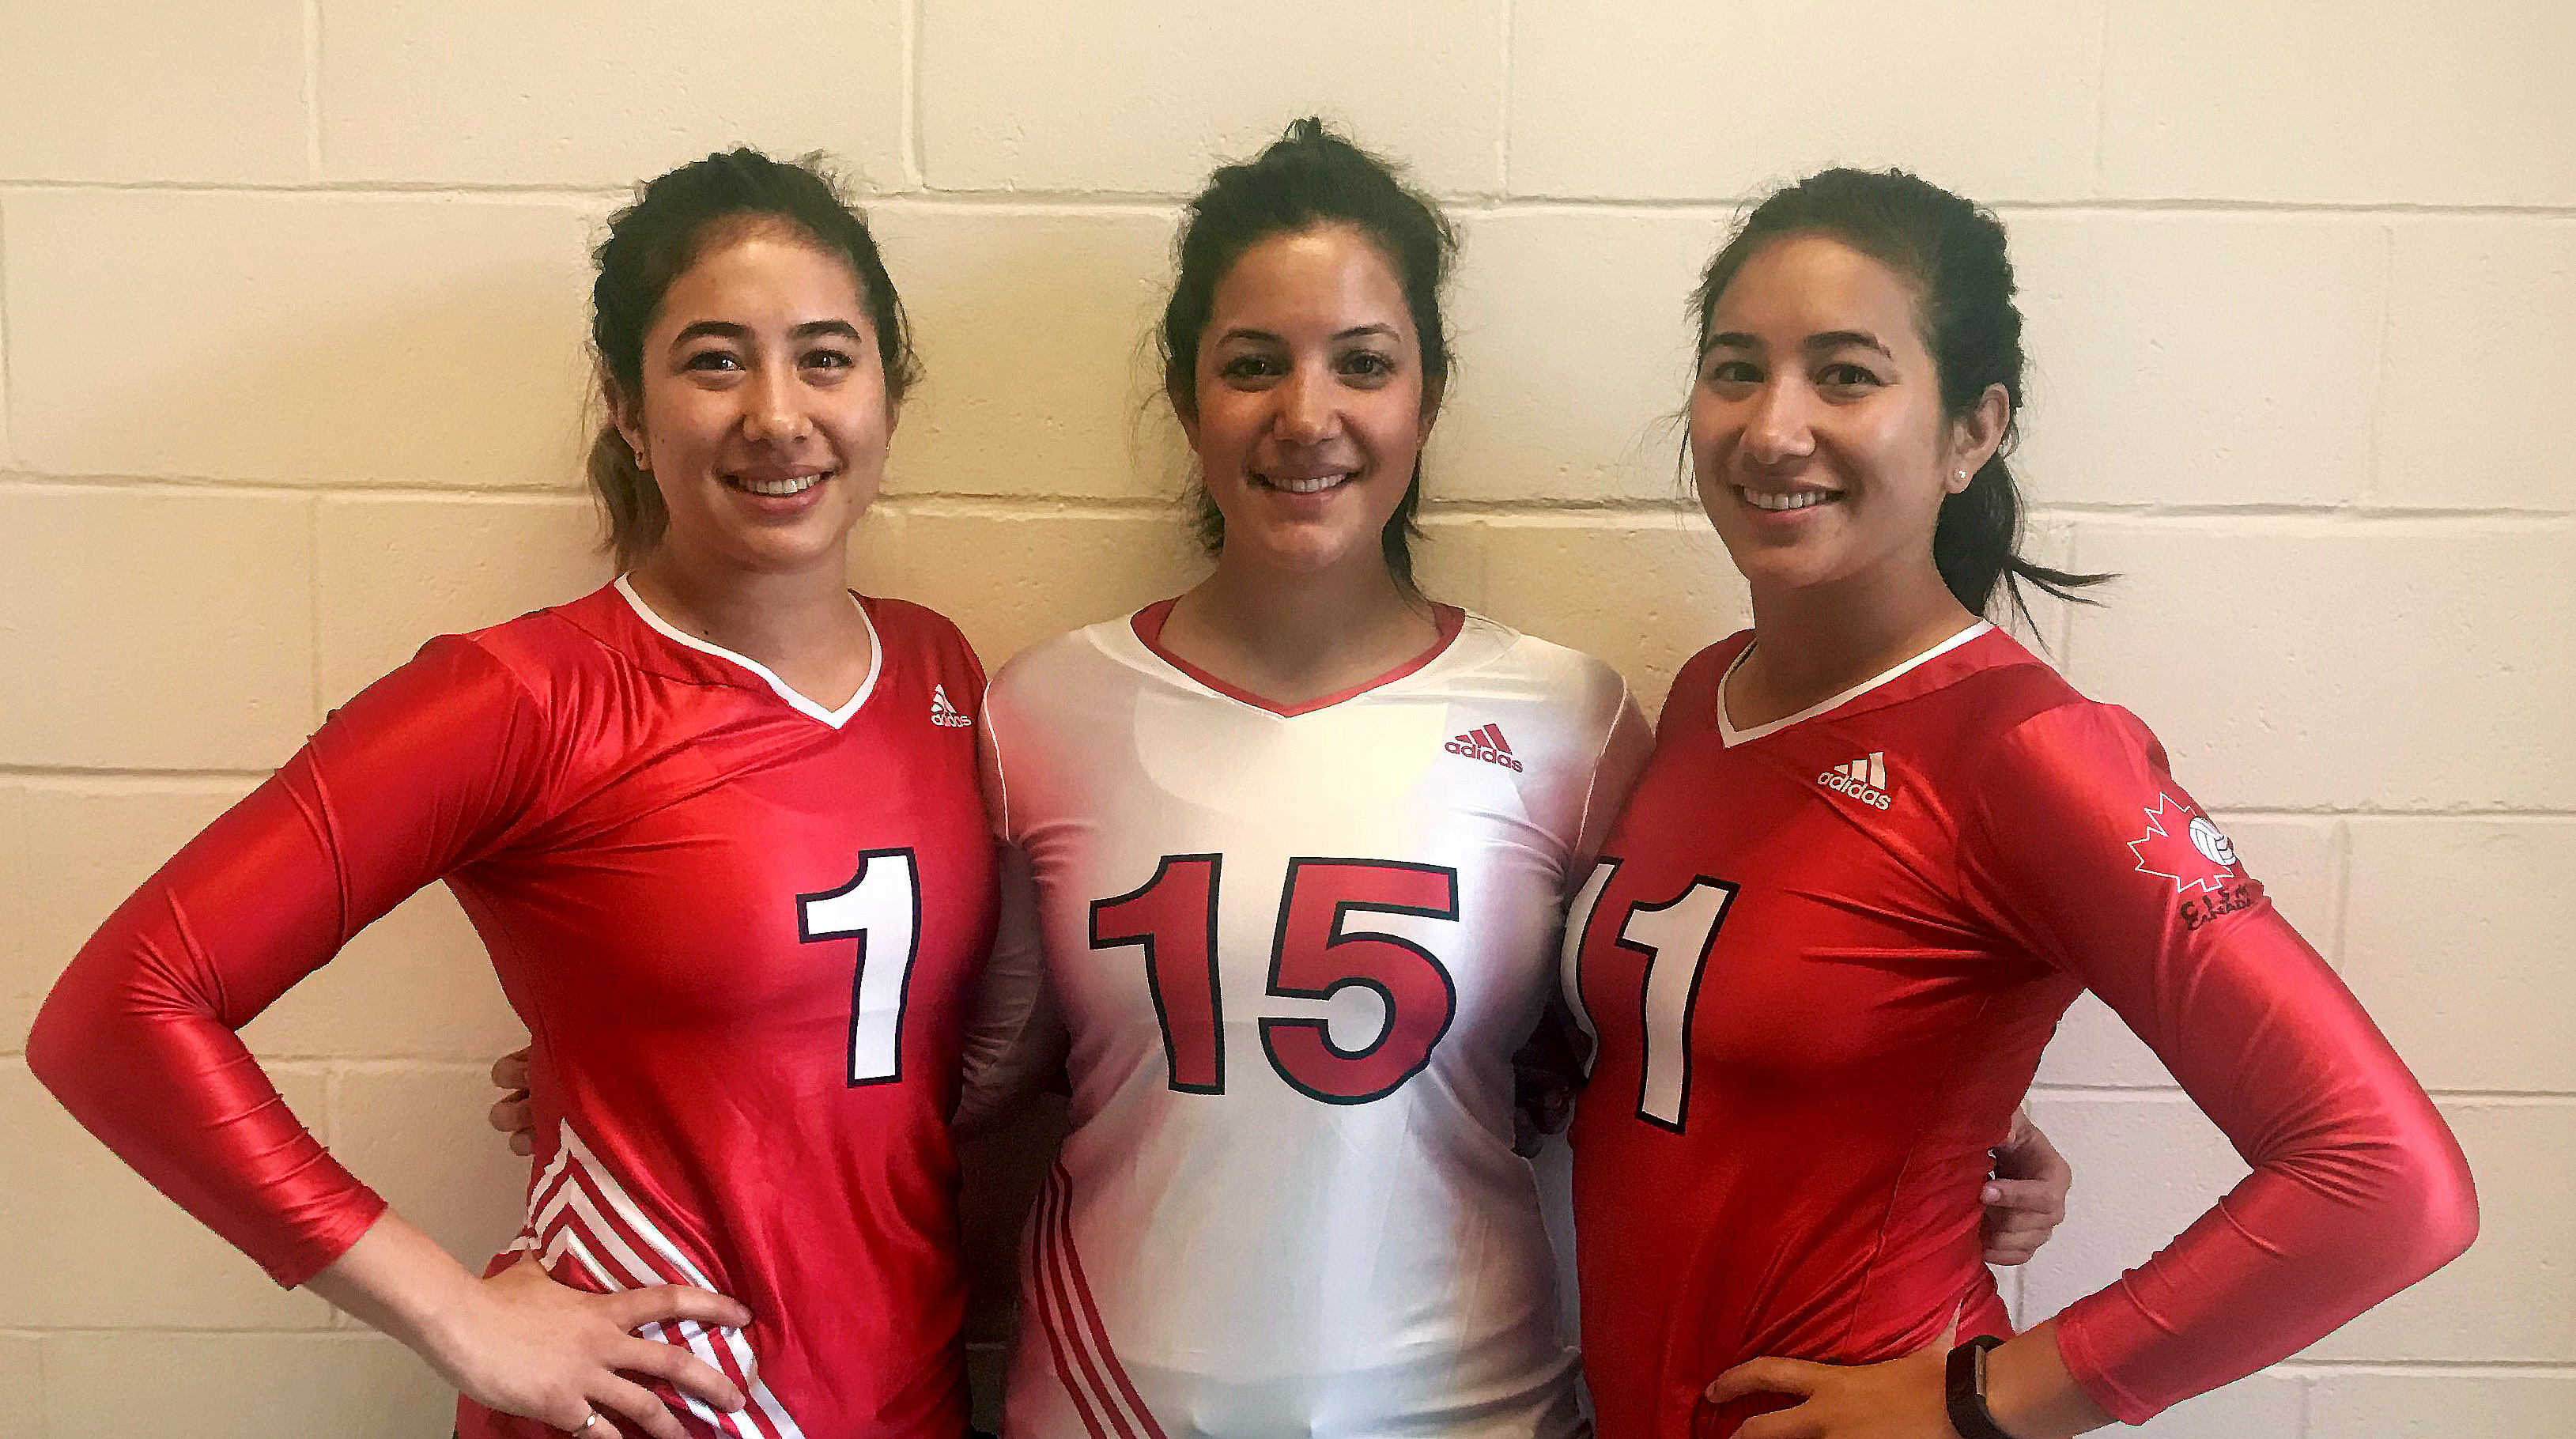 Lieutenant Cassidy Chang (left), Lieutenant (Navy) Kelsey Chang and Lieutenant Delanie Chang (right) are representing Canada at the Conseil international du sport militaire (CISM) 19th World Military Volleyball Championships from May 28 to June 3, 2018, in Edmonton, Alberta. PHOTO: Submitted